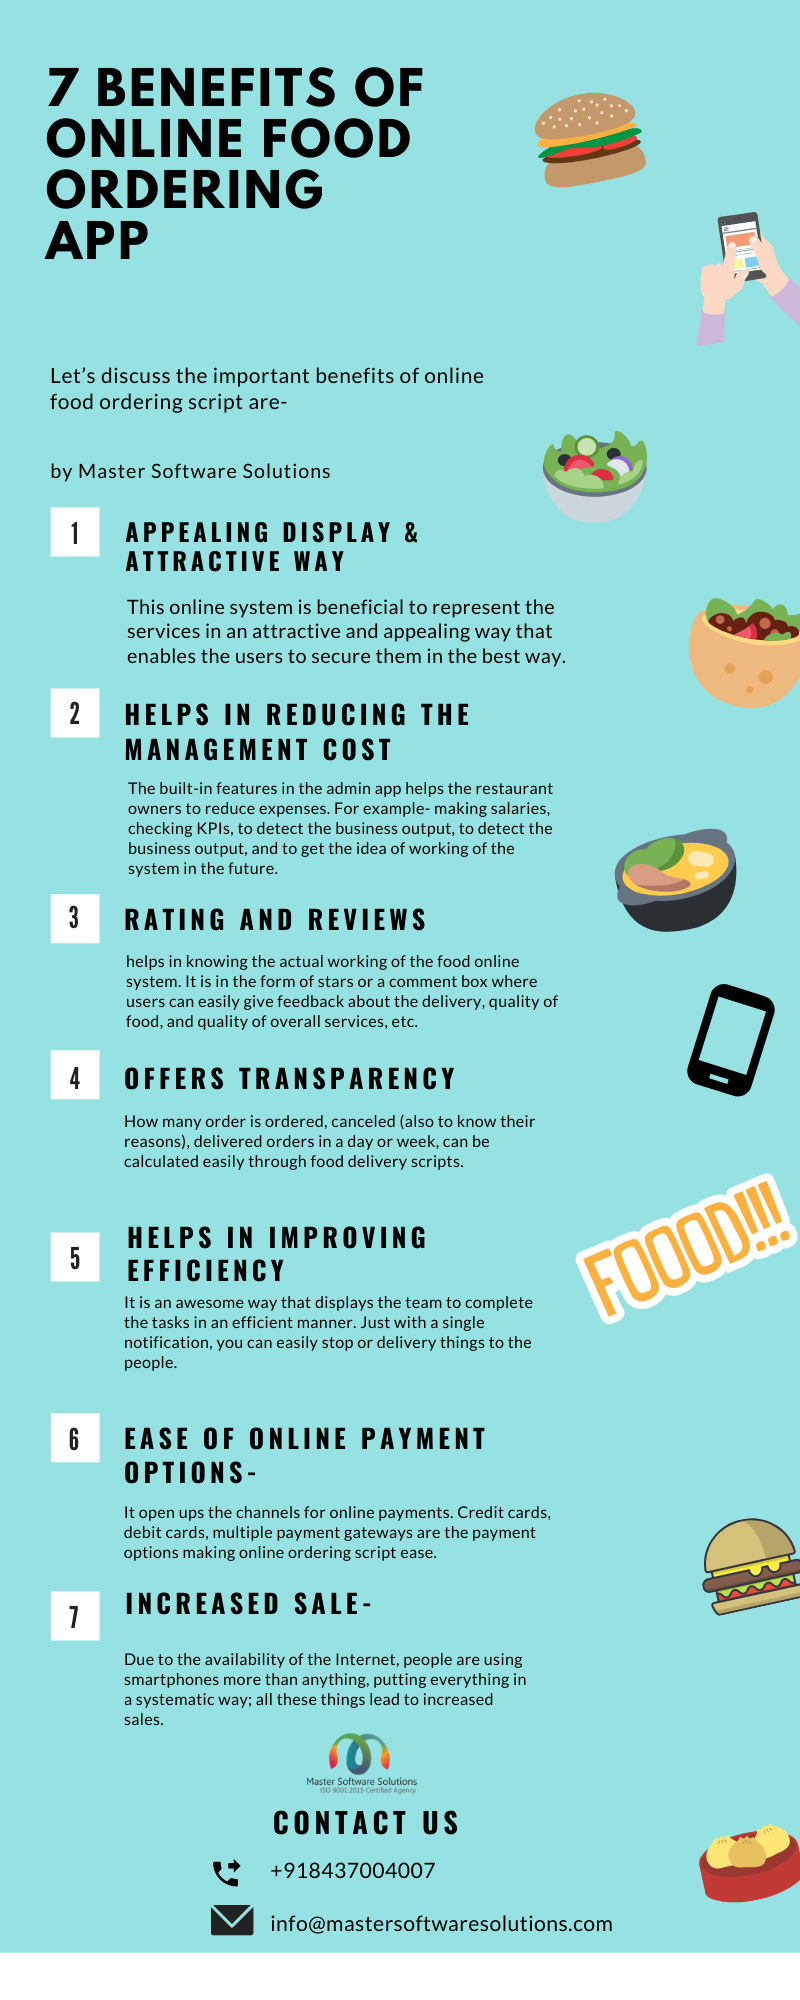 7 Benefits Of Online Food Ordering App #infographic